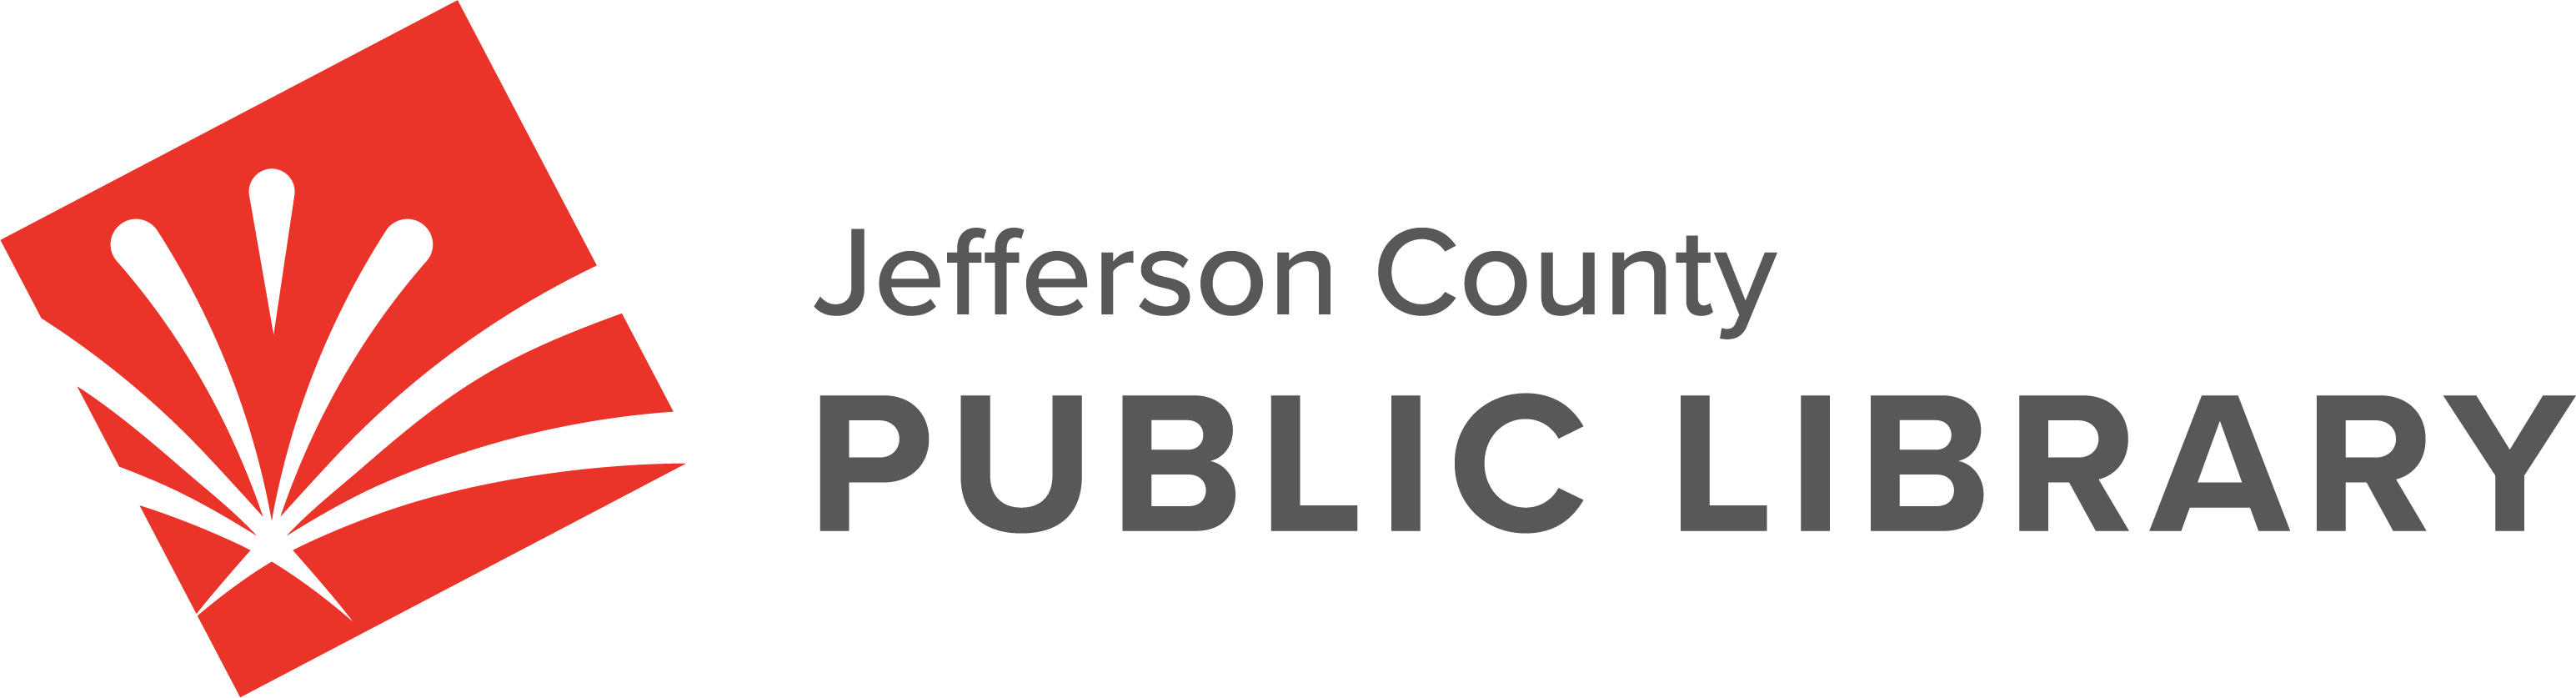 Jefferson County Public Library Logo